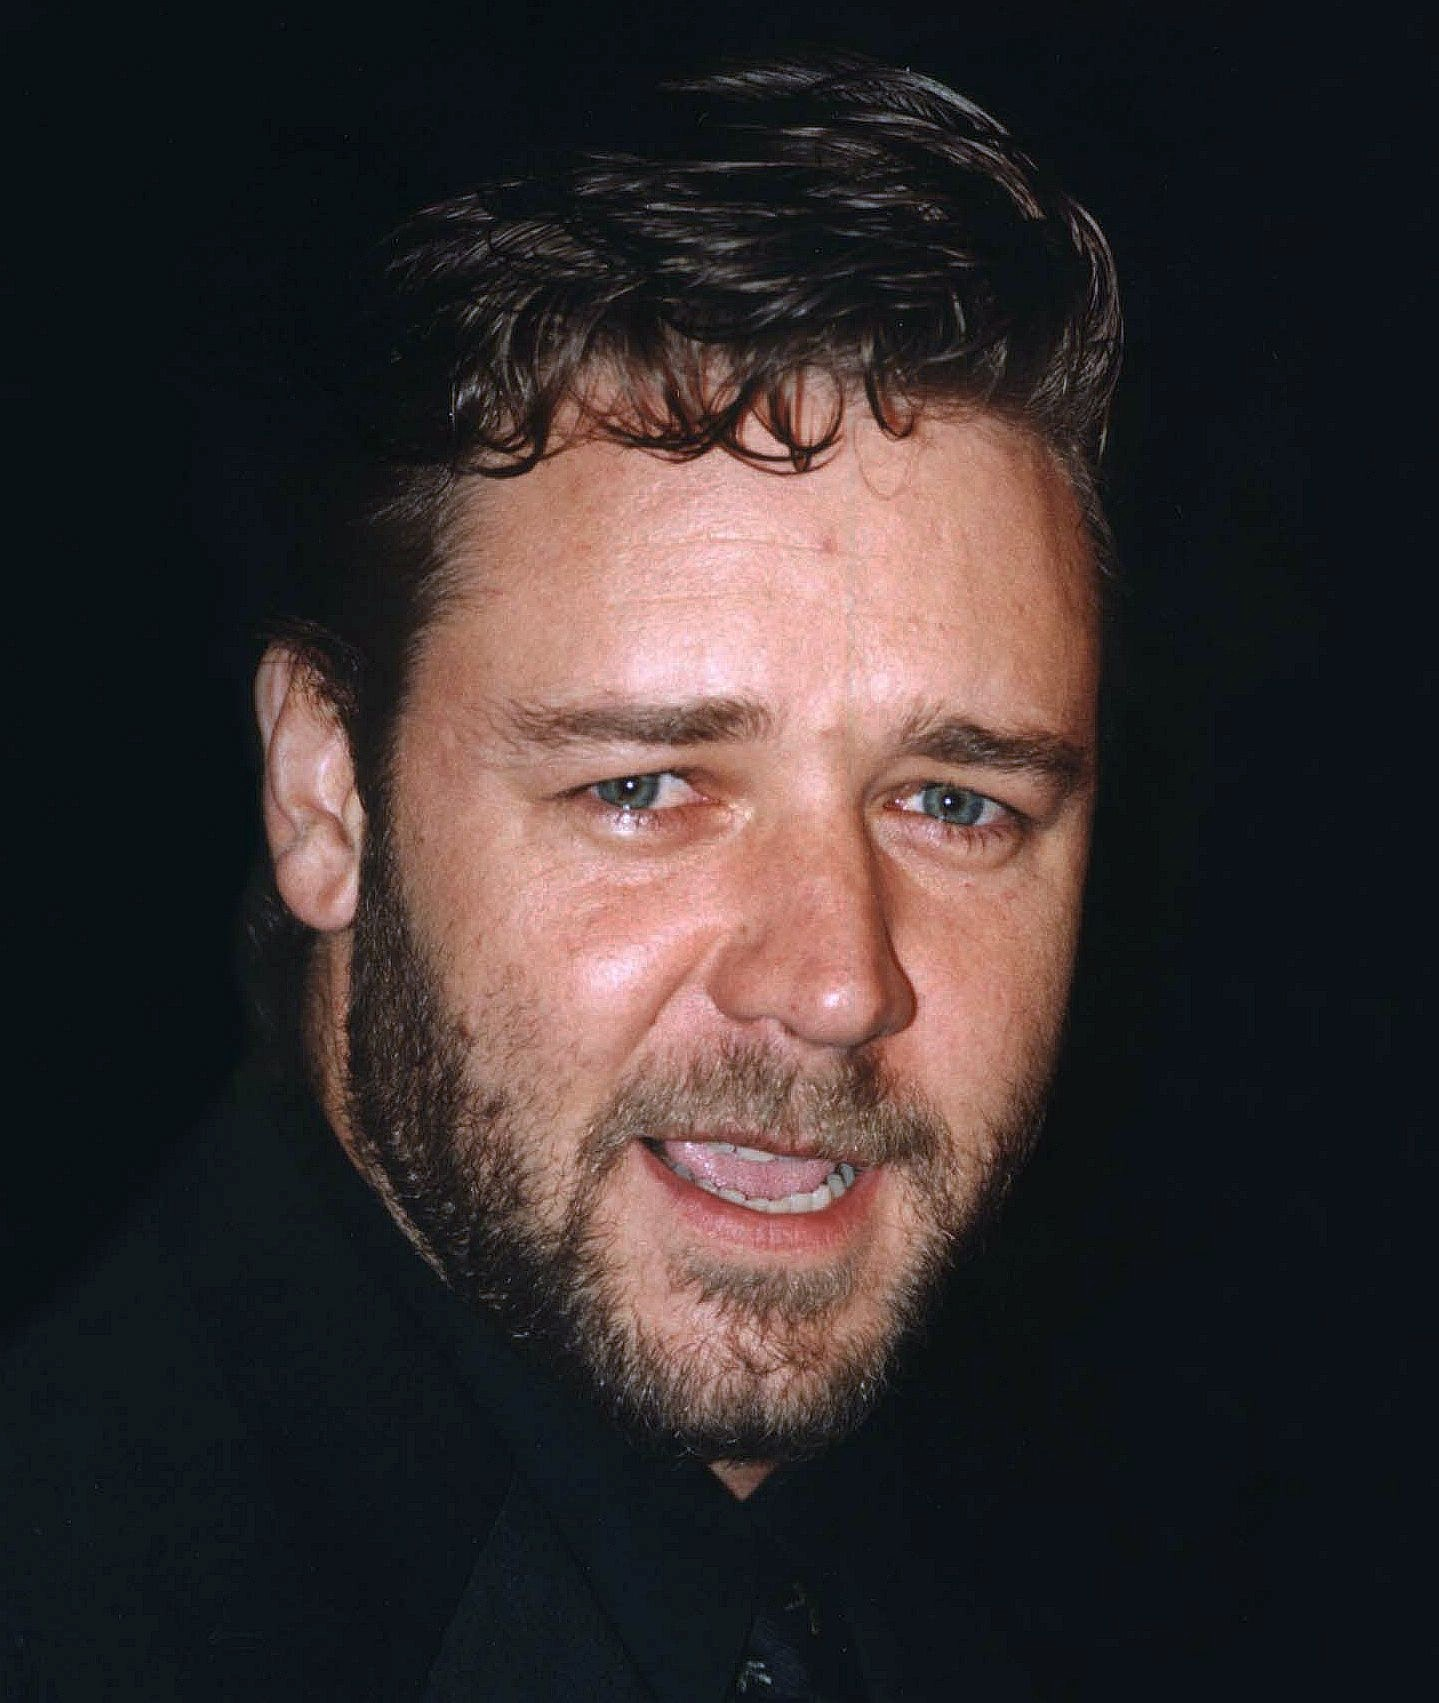 Bet on Russell Crowe, 1xbet, 1xbet sportsbook